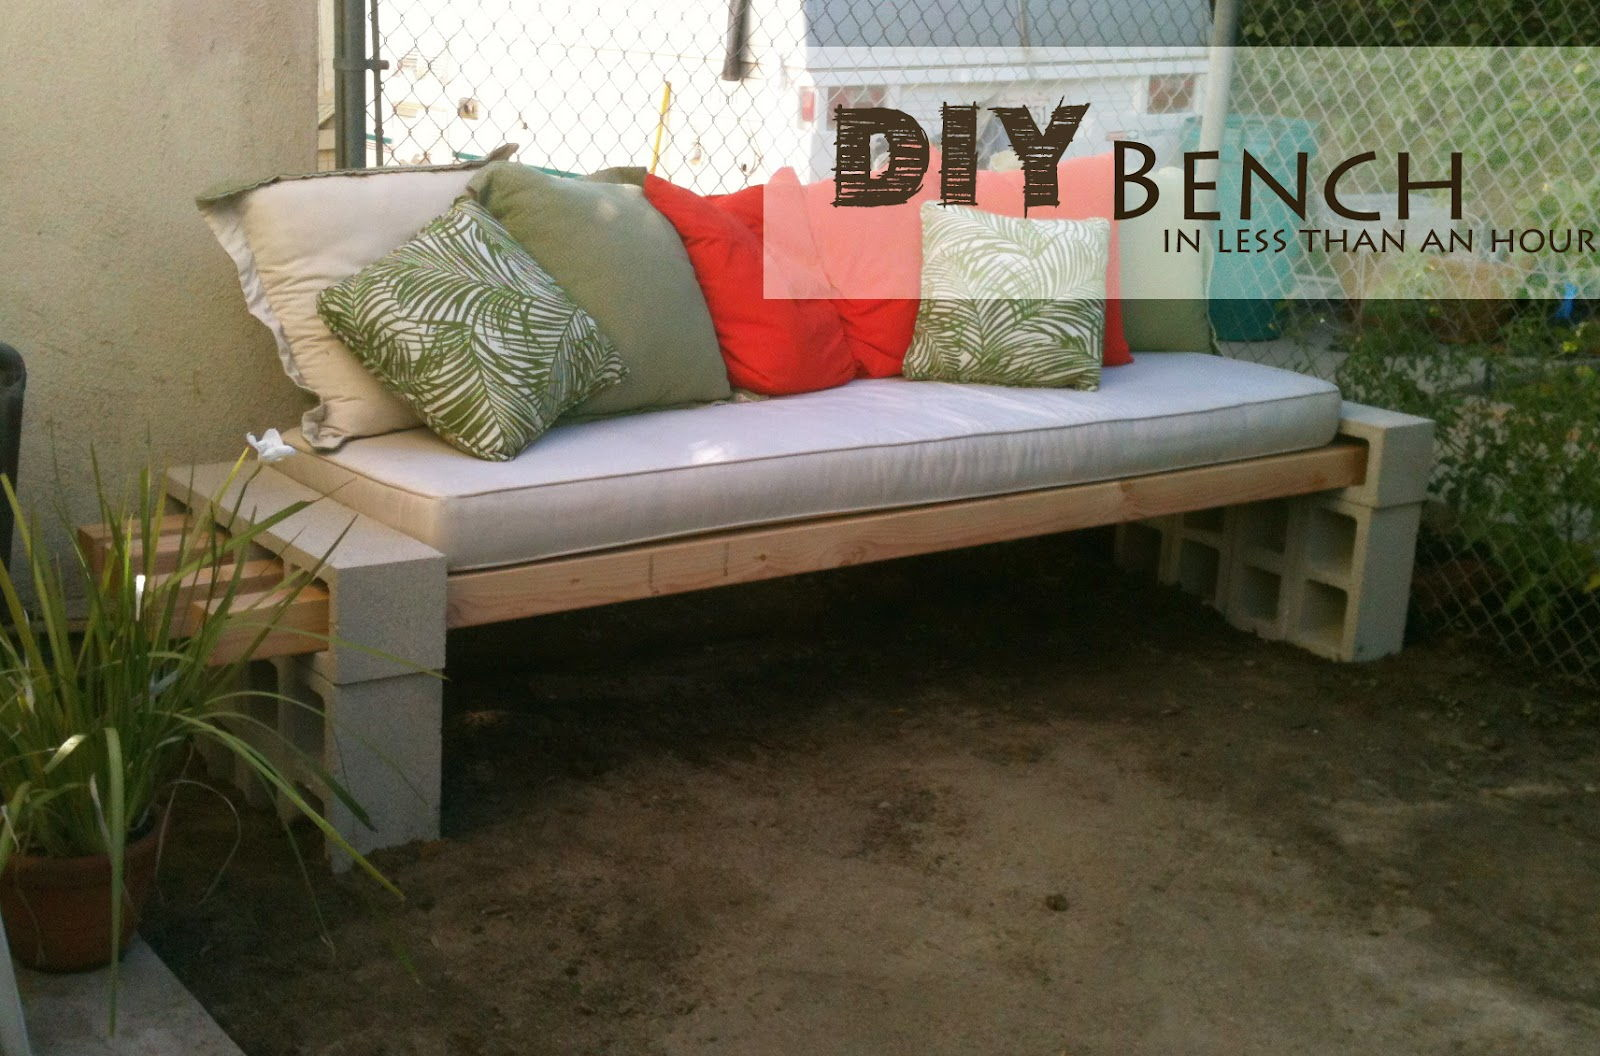 Design Cinder Block Table 22 creative ideas to use concrete blocks beesdiy com 20 for your home9